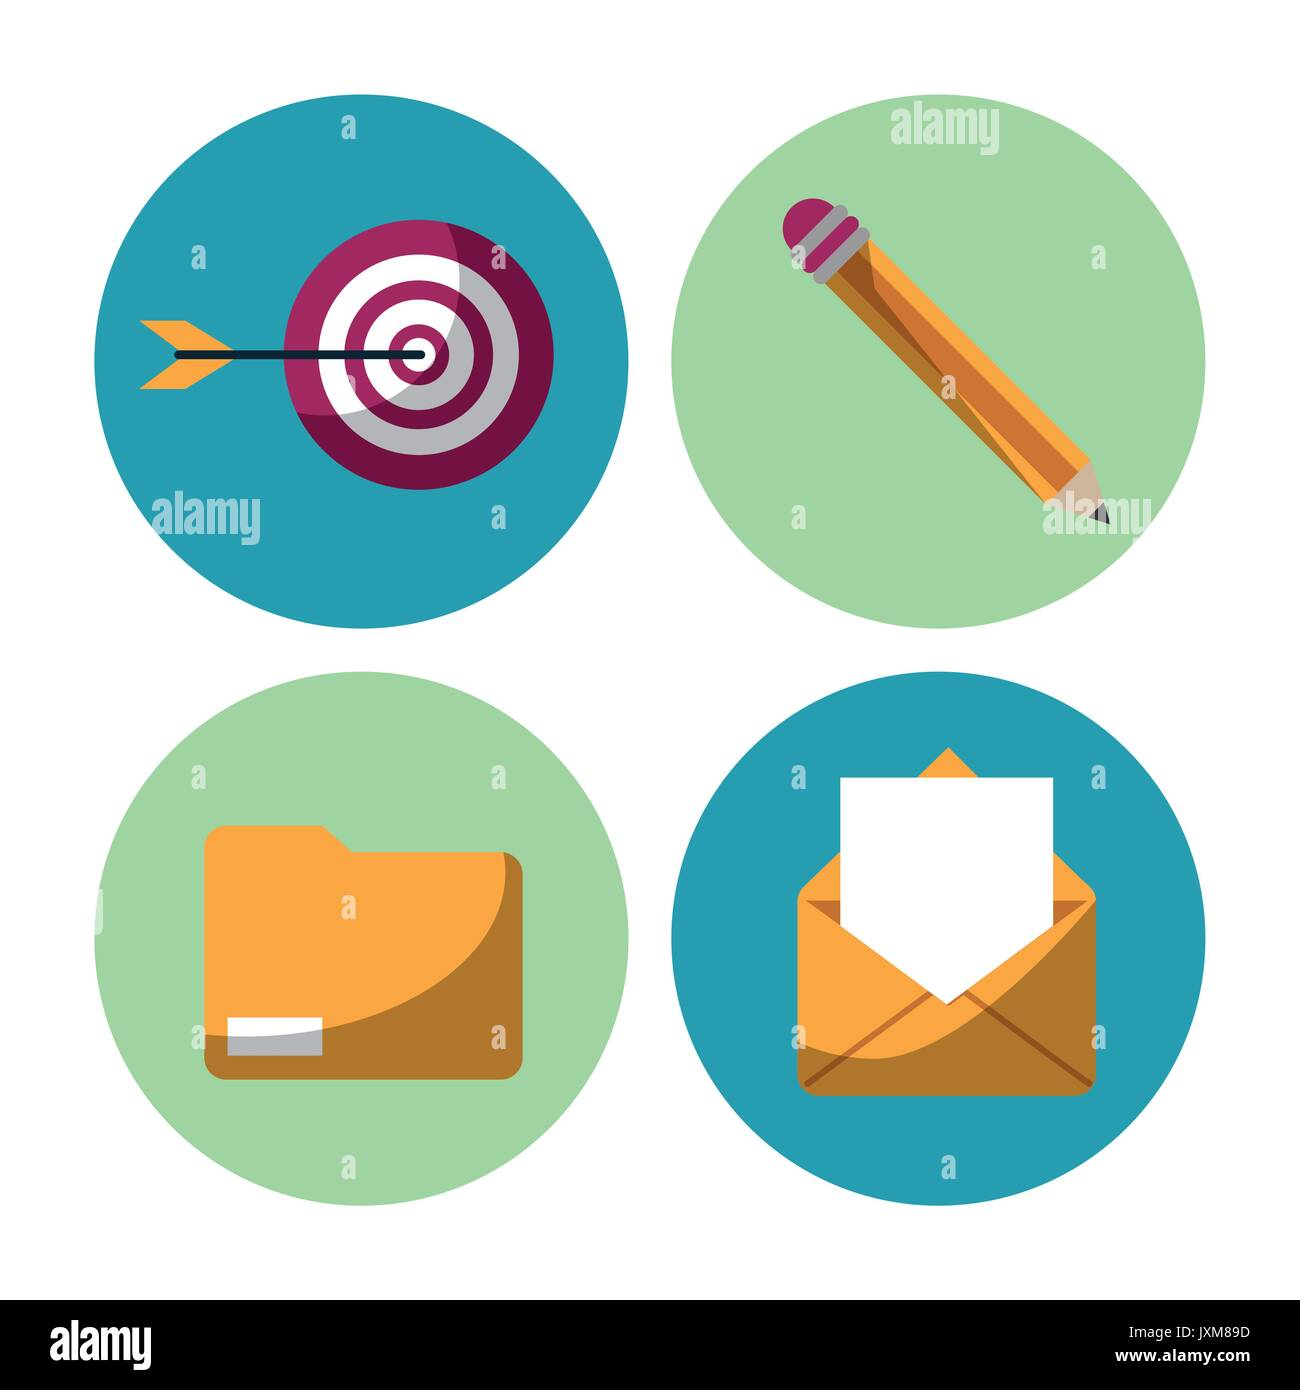 Group Collaboration Icons Stock Photos & Group Collaboration Icons ...